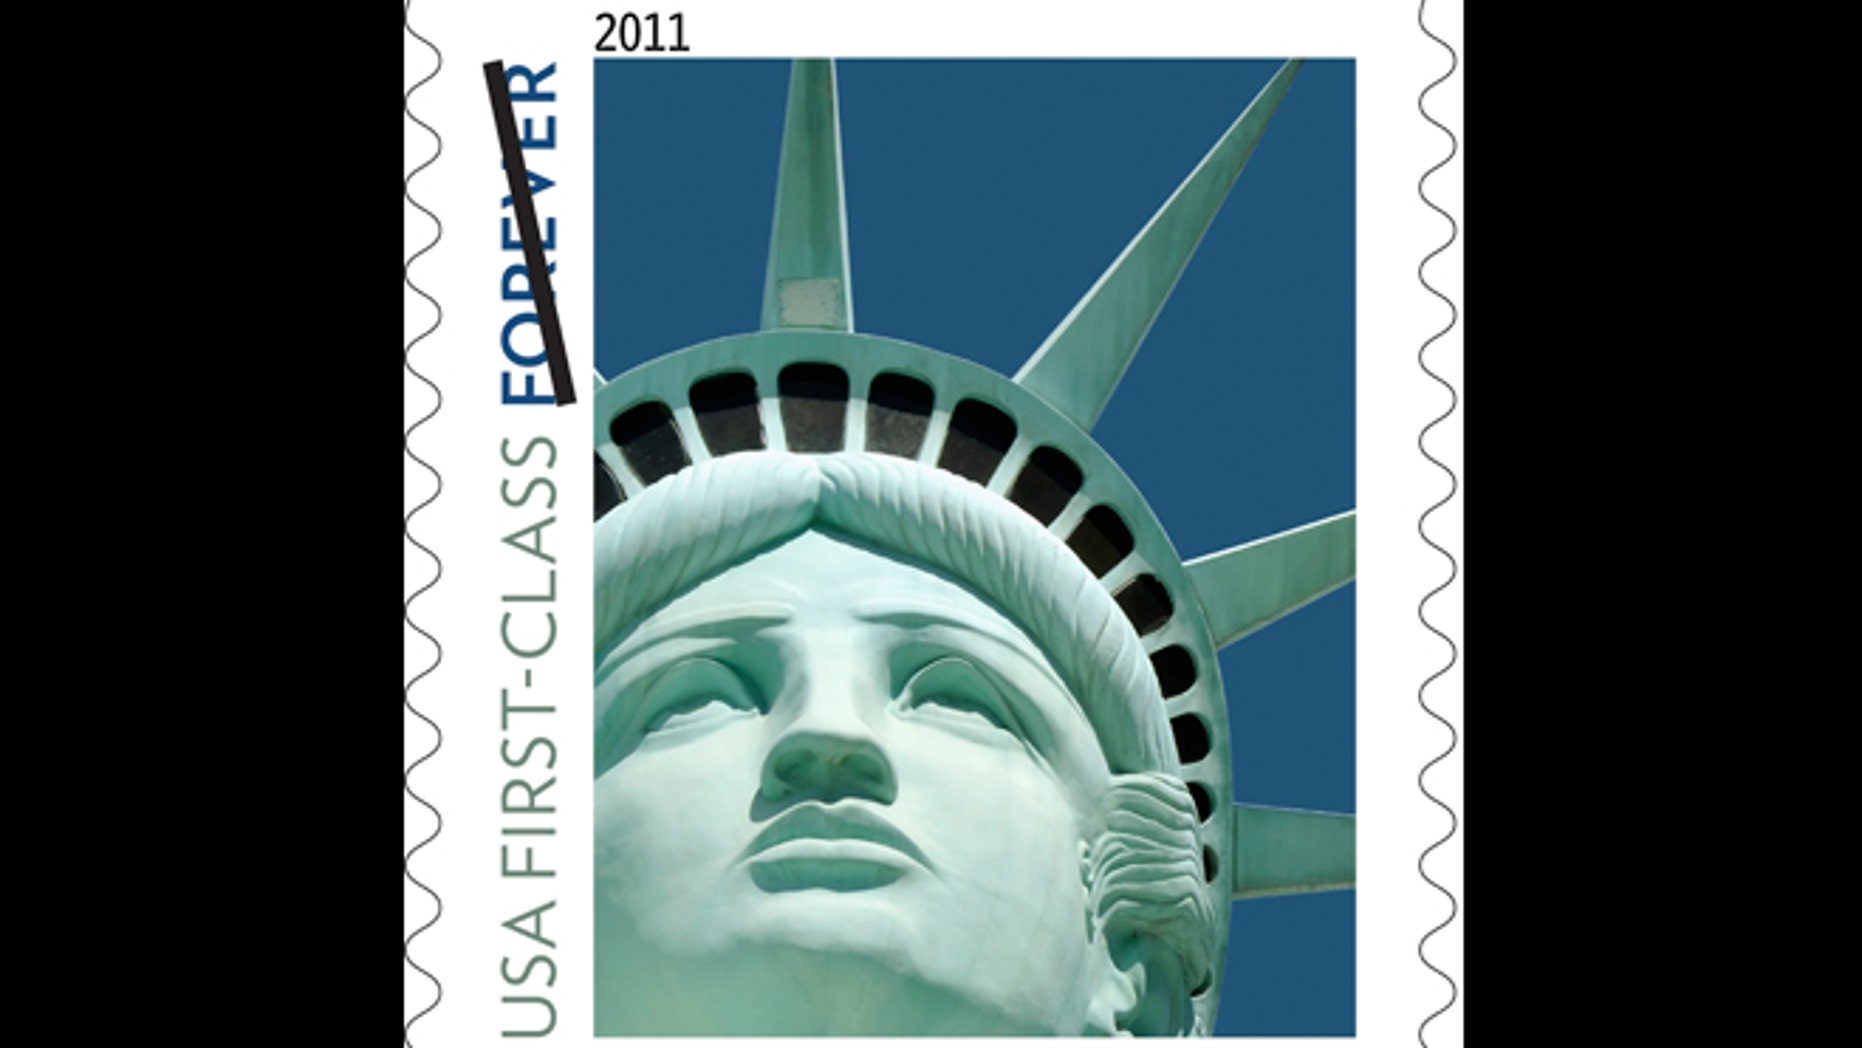 This undated file handout image provided by the U.S. Postal Service shows the Lady Liberty first class postage stamp first issued in 2011. An embarrassing Statue of Liberty forever stamp mistake is coming back to haunt the Postal Service.The design released in 2011 was not based on the statue in New York Harbor, as intended, but on a replica outside the New York-New York casino hotel in Las Vegas. Now, the sculptor who made the Lady Liberty of the Las Vegas Strip is suing the government for copyright infringement.